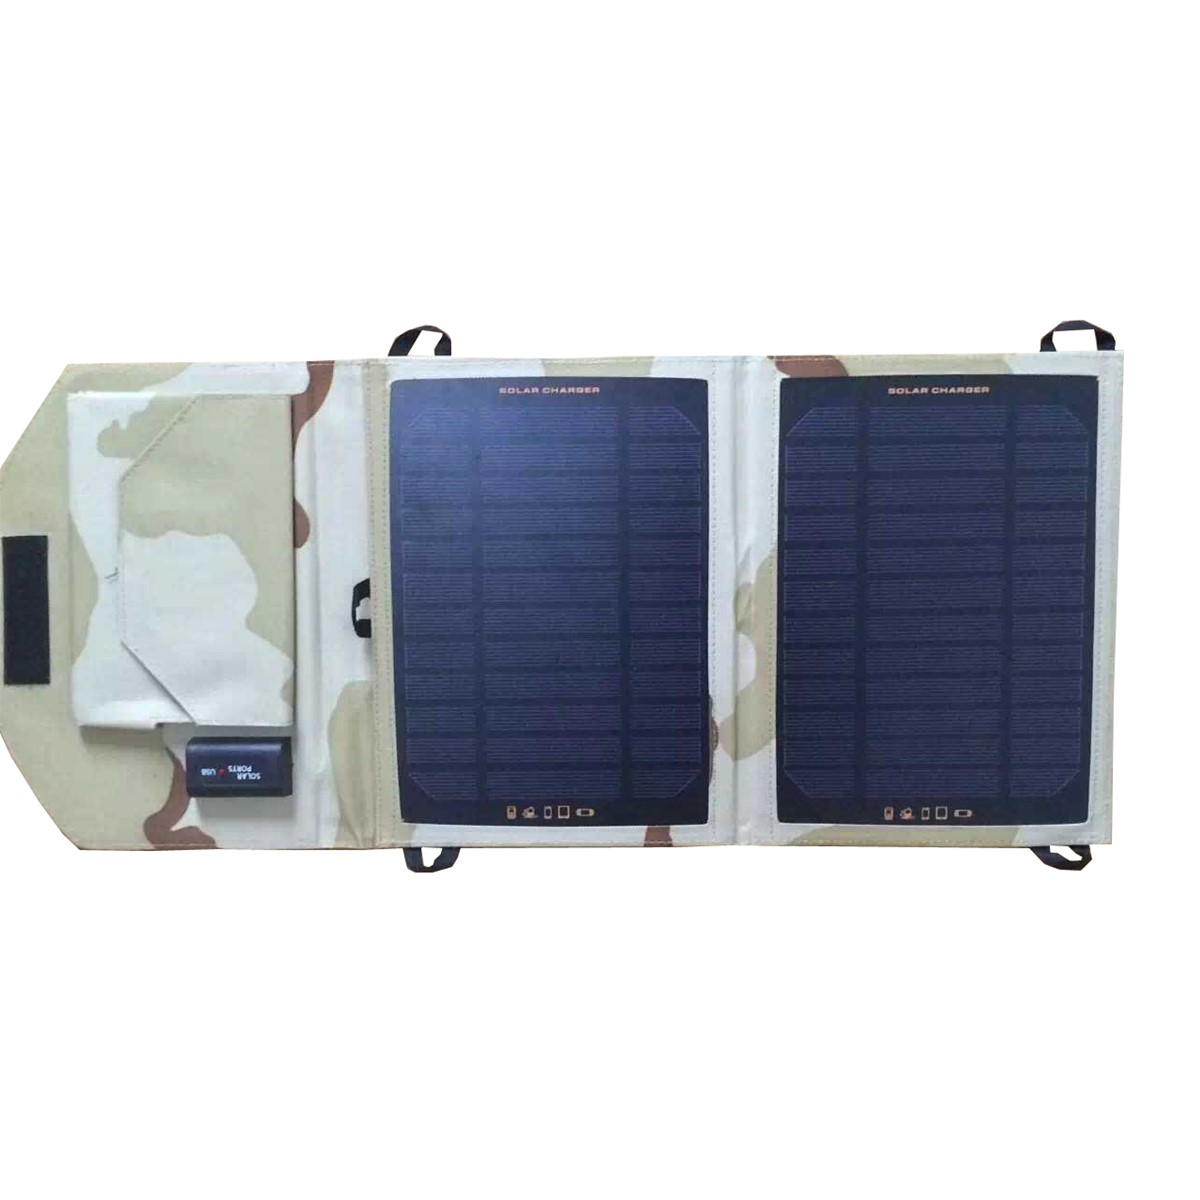 High Efficiency Solar Charger Solar Cell Phone Charger 7W 10W 14W